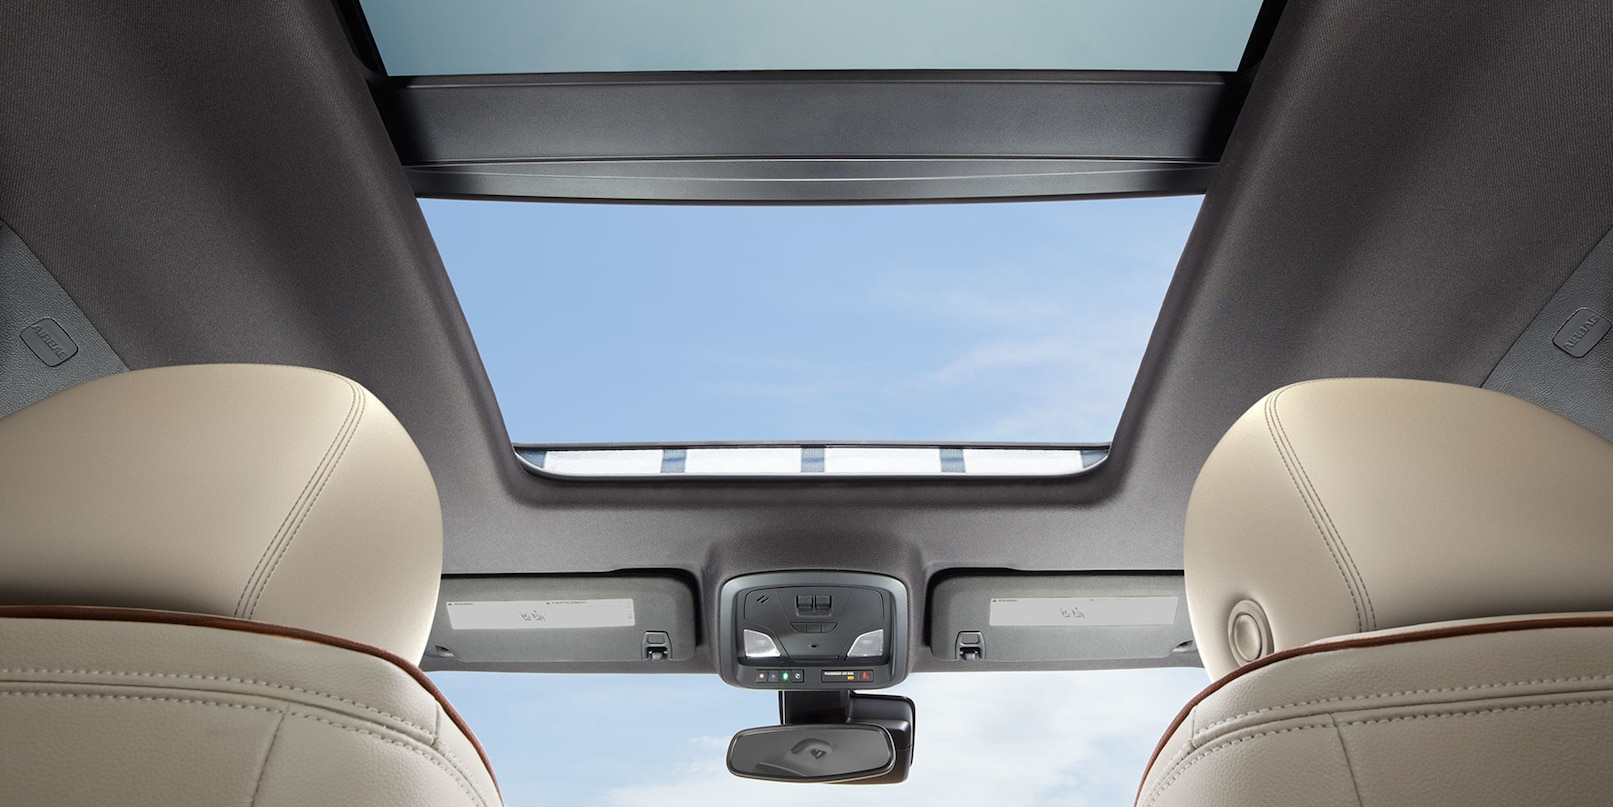 Panoramic Sunroof in the Impala